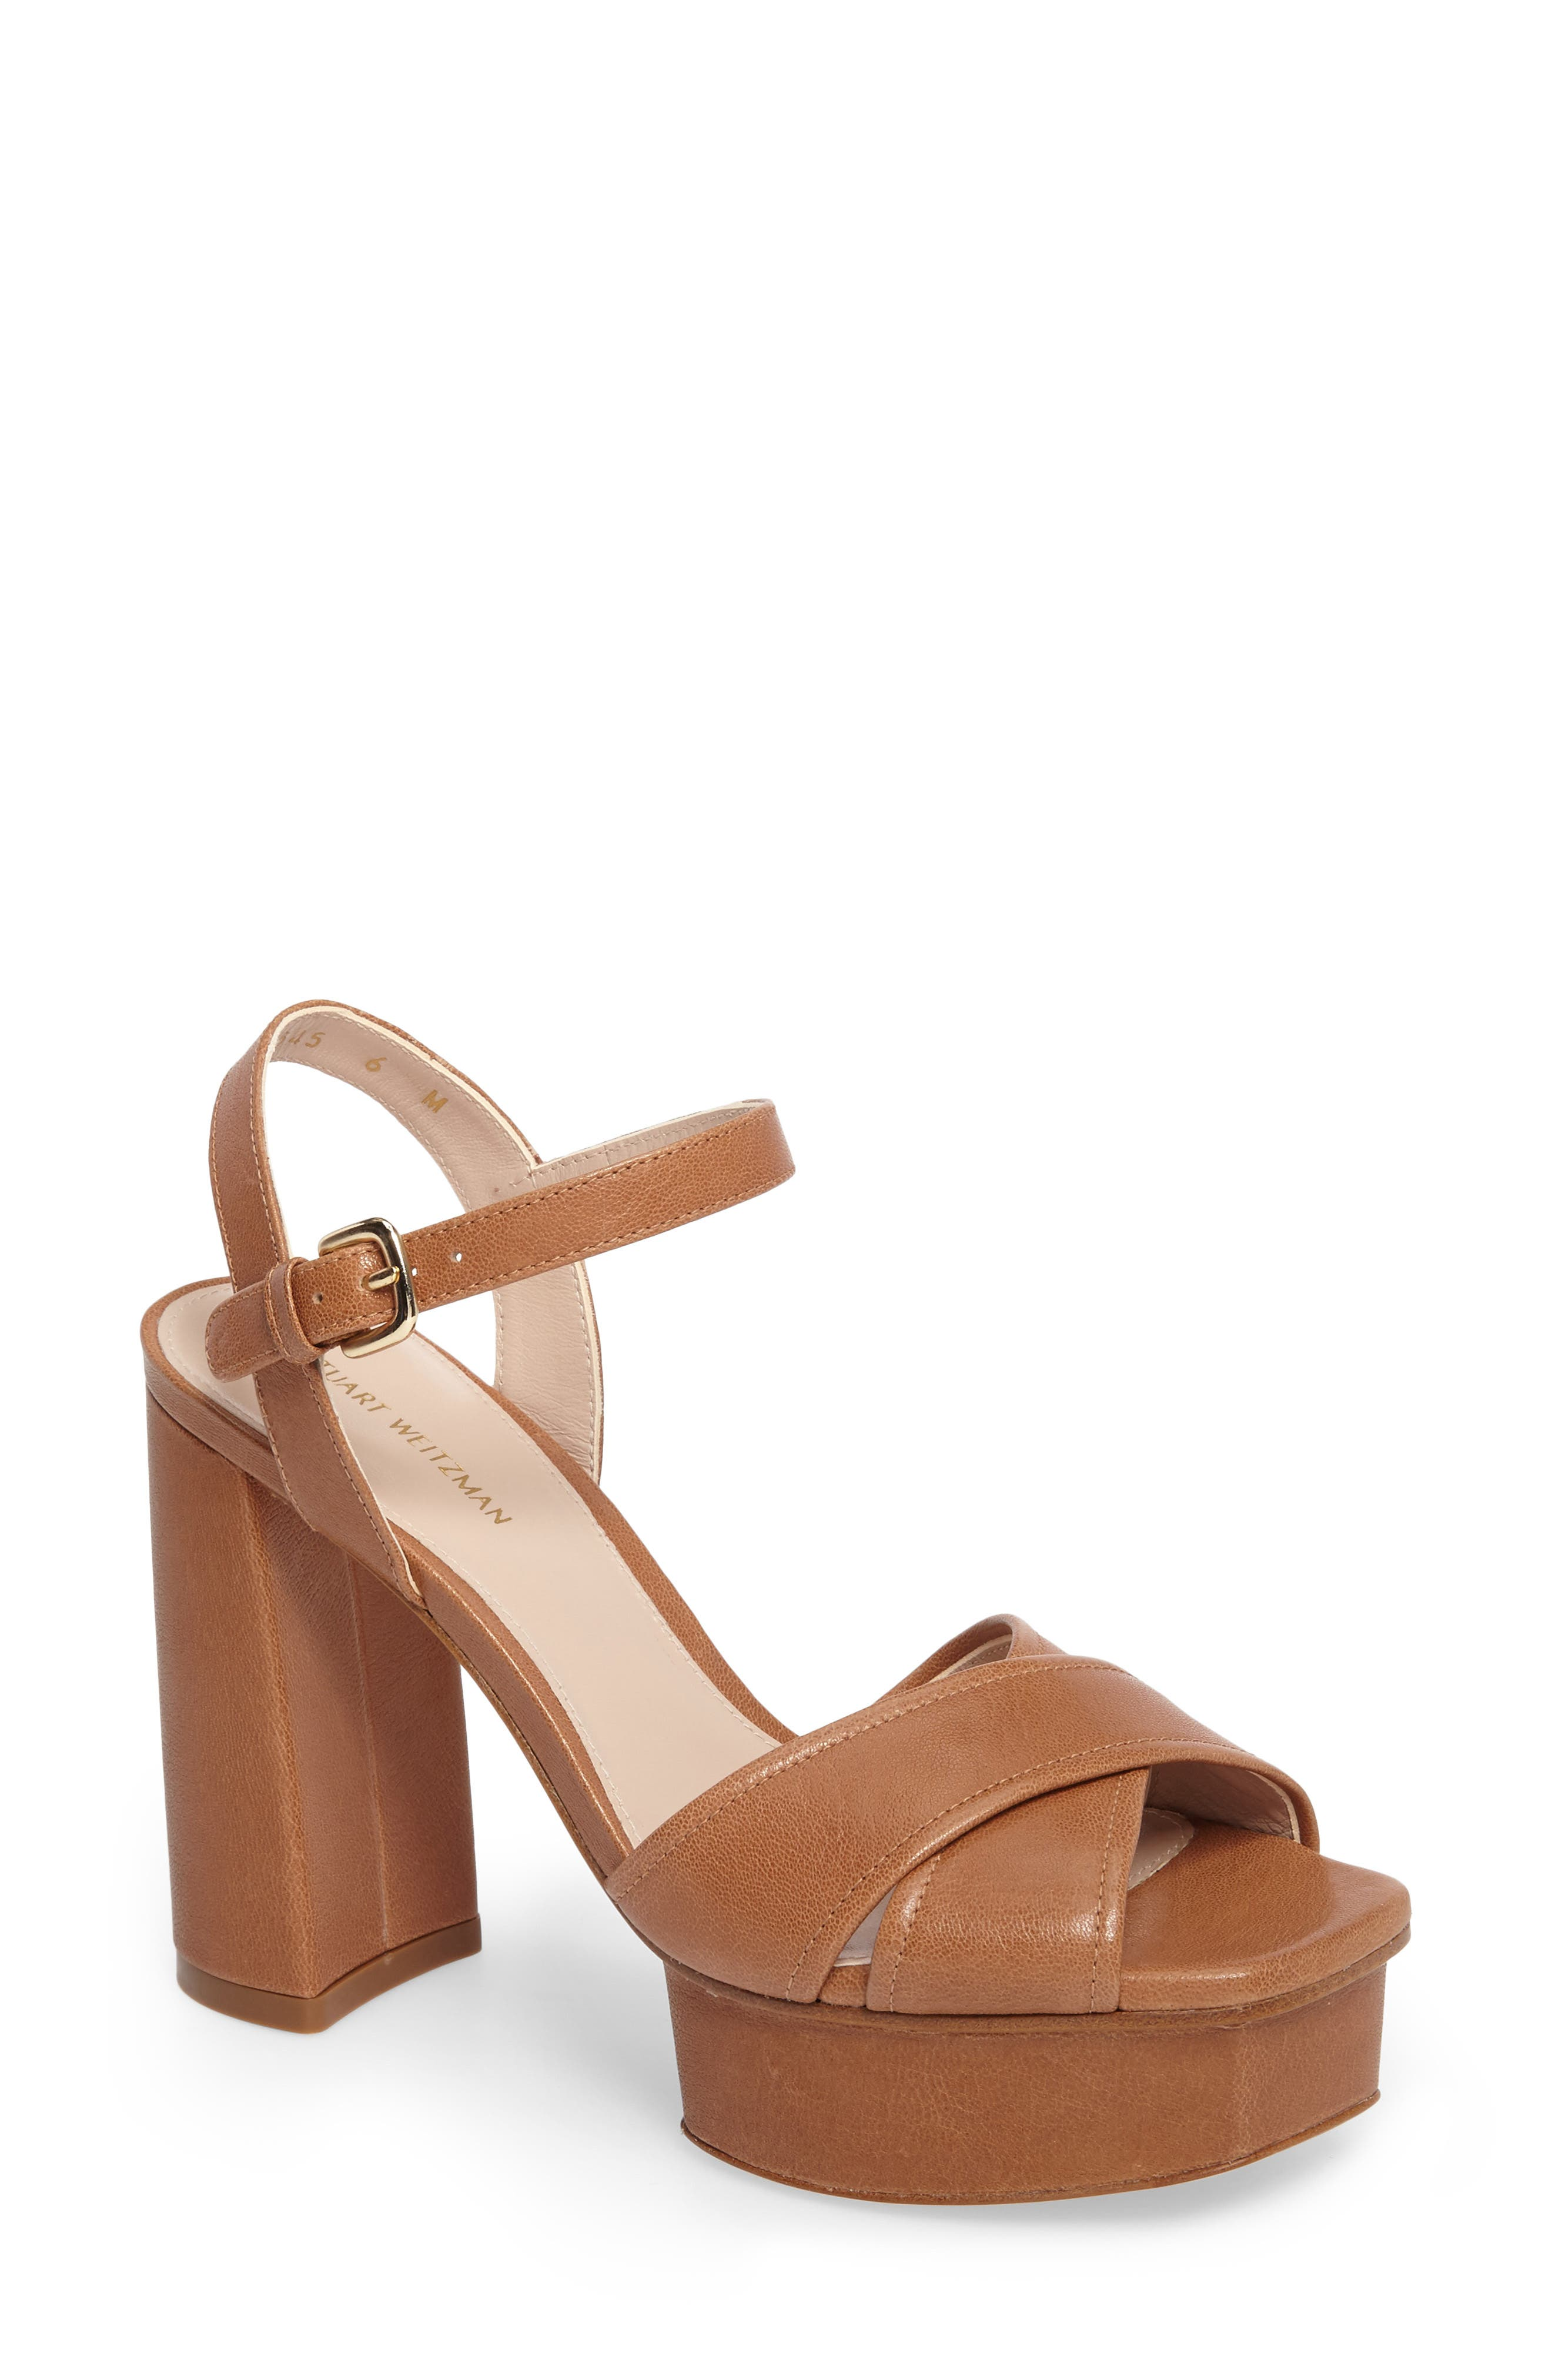 Exposed Platform Sandal,                             Main thumbnail 4, color,